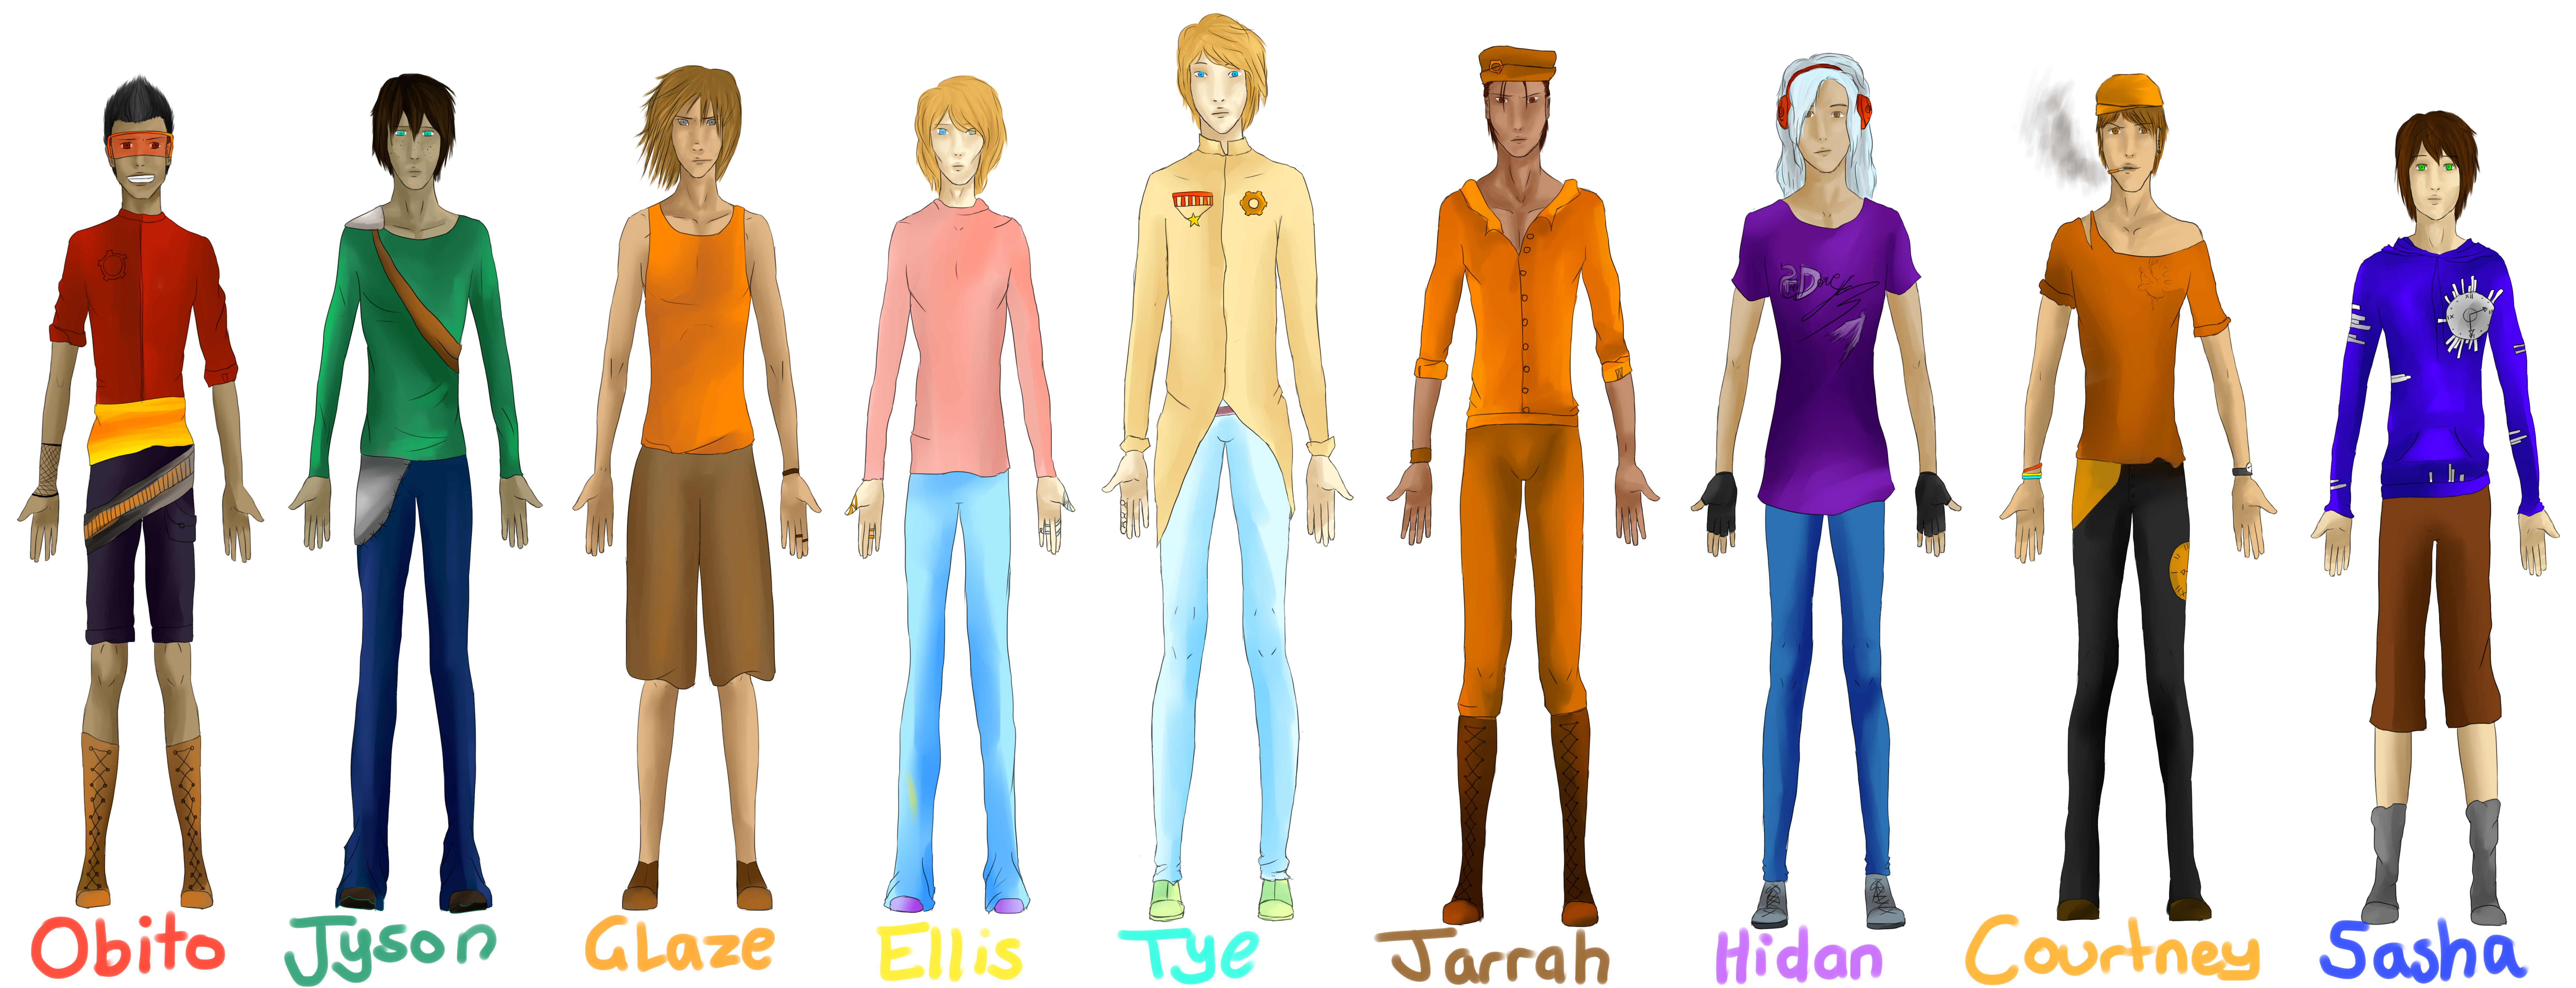 male character reference - photo #27